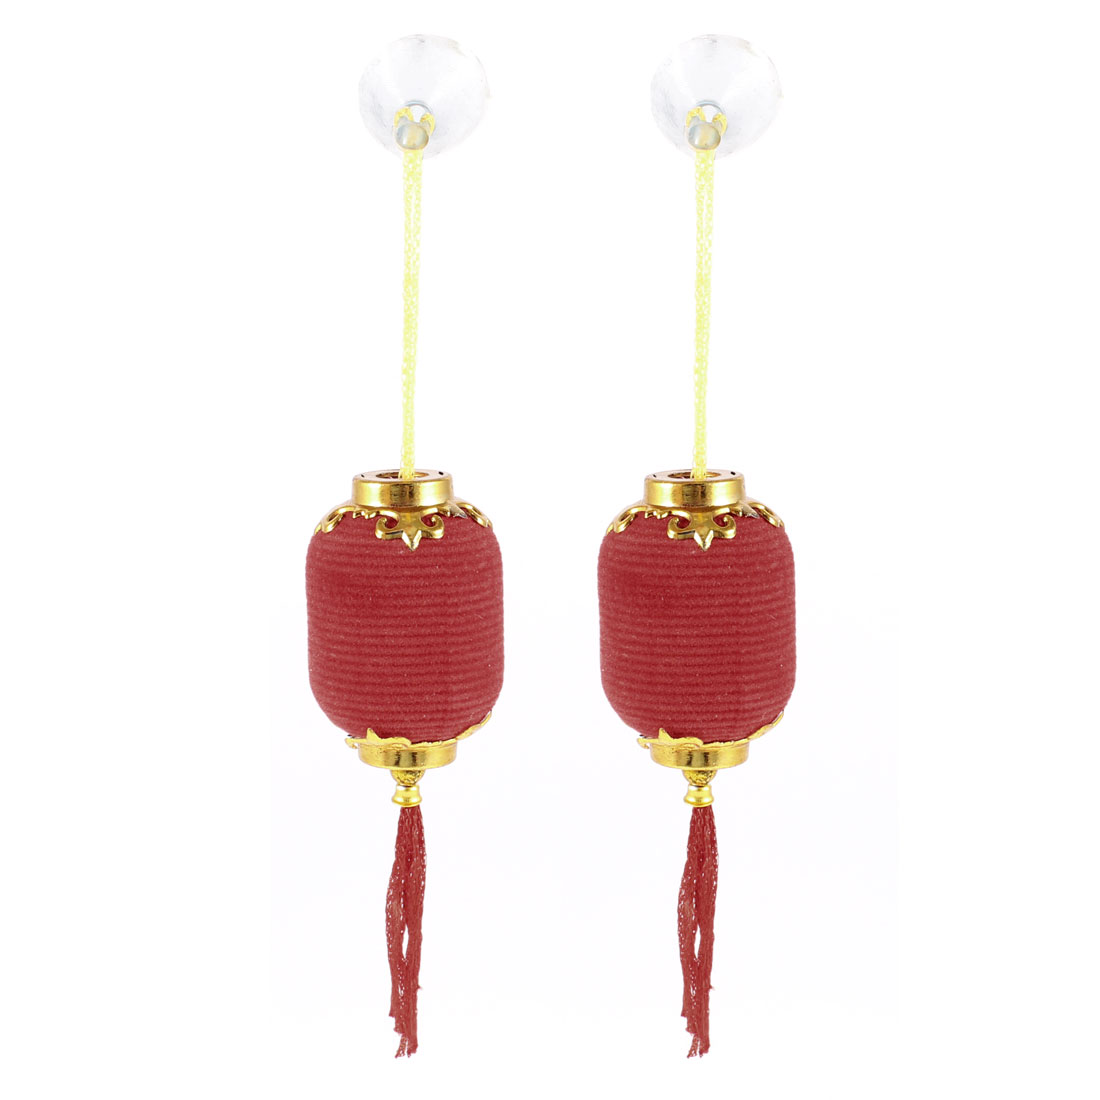 Festival Suction Cup Hanging Chinese Lantern Decoration Red 5cm Length 2pcs